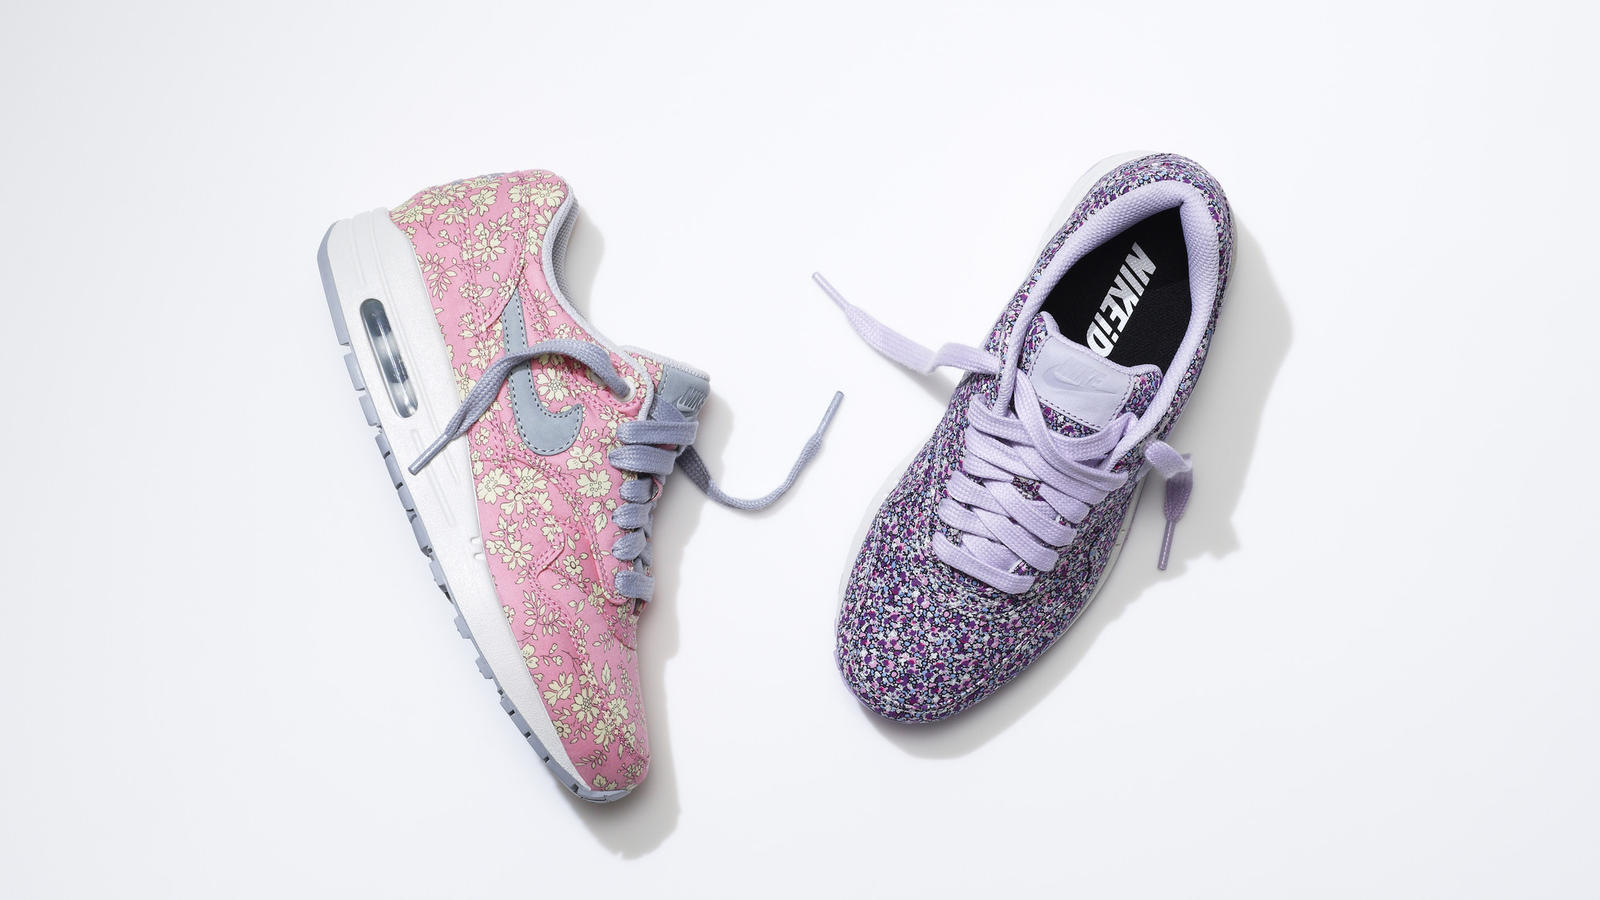 pretty nice 3b03e b289e su13 nsw nikeid group liberty 6up untied 2.  su13 nsw nikeid blazerhigh liberty pair 2. am1 liberty